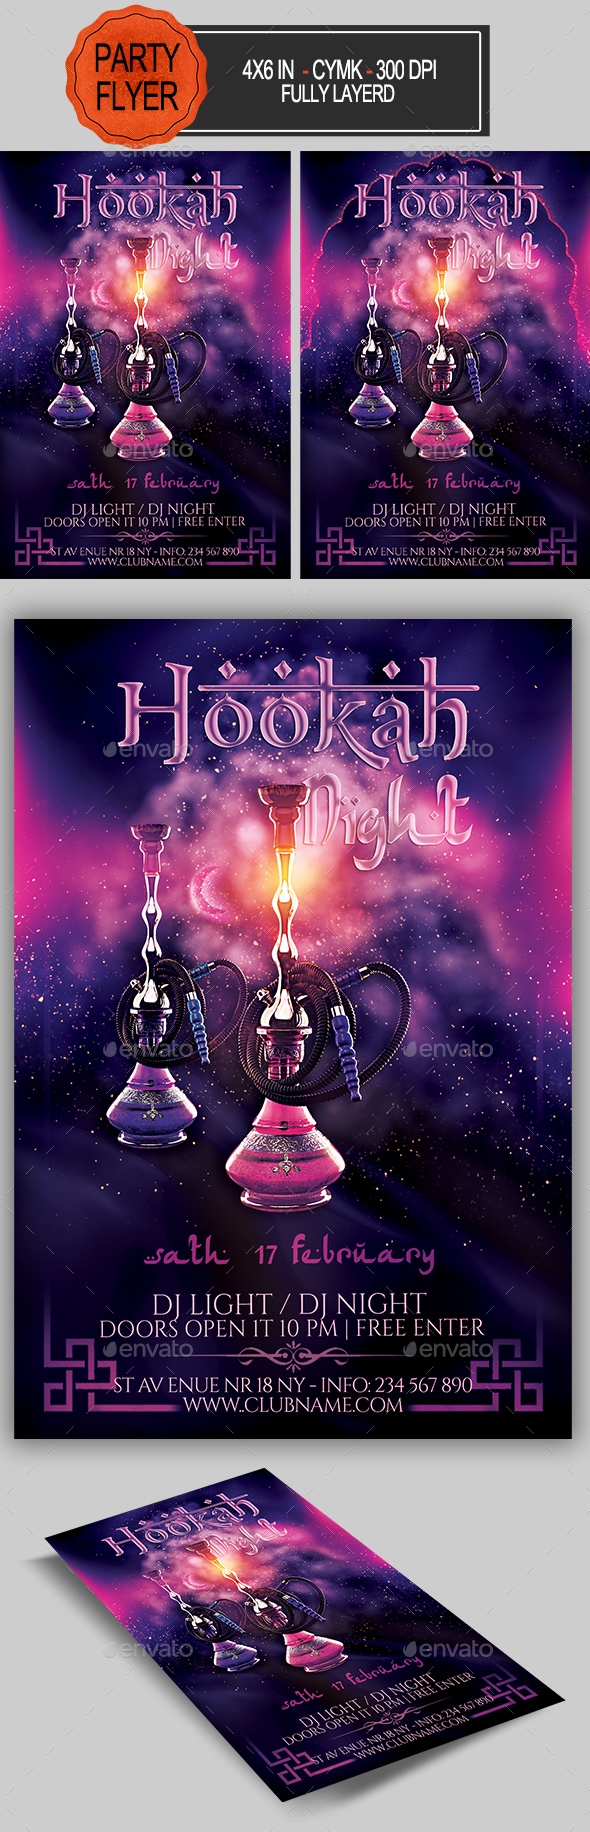 Hookah Flyer - Clubs & Parties Events